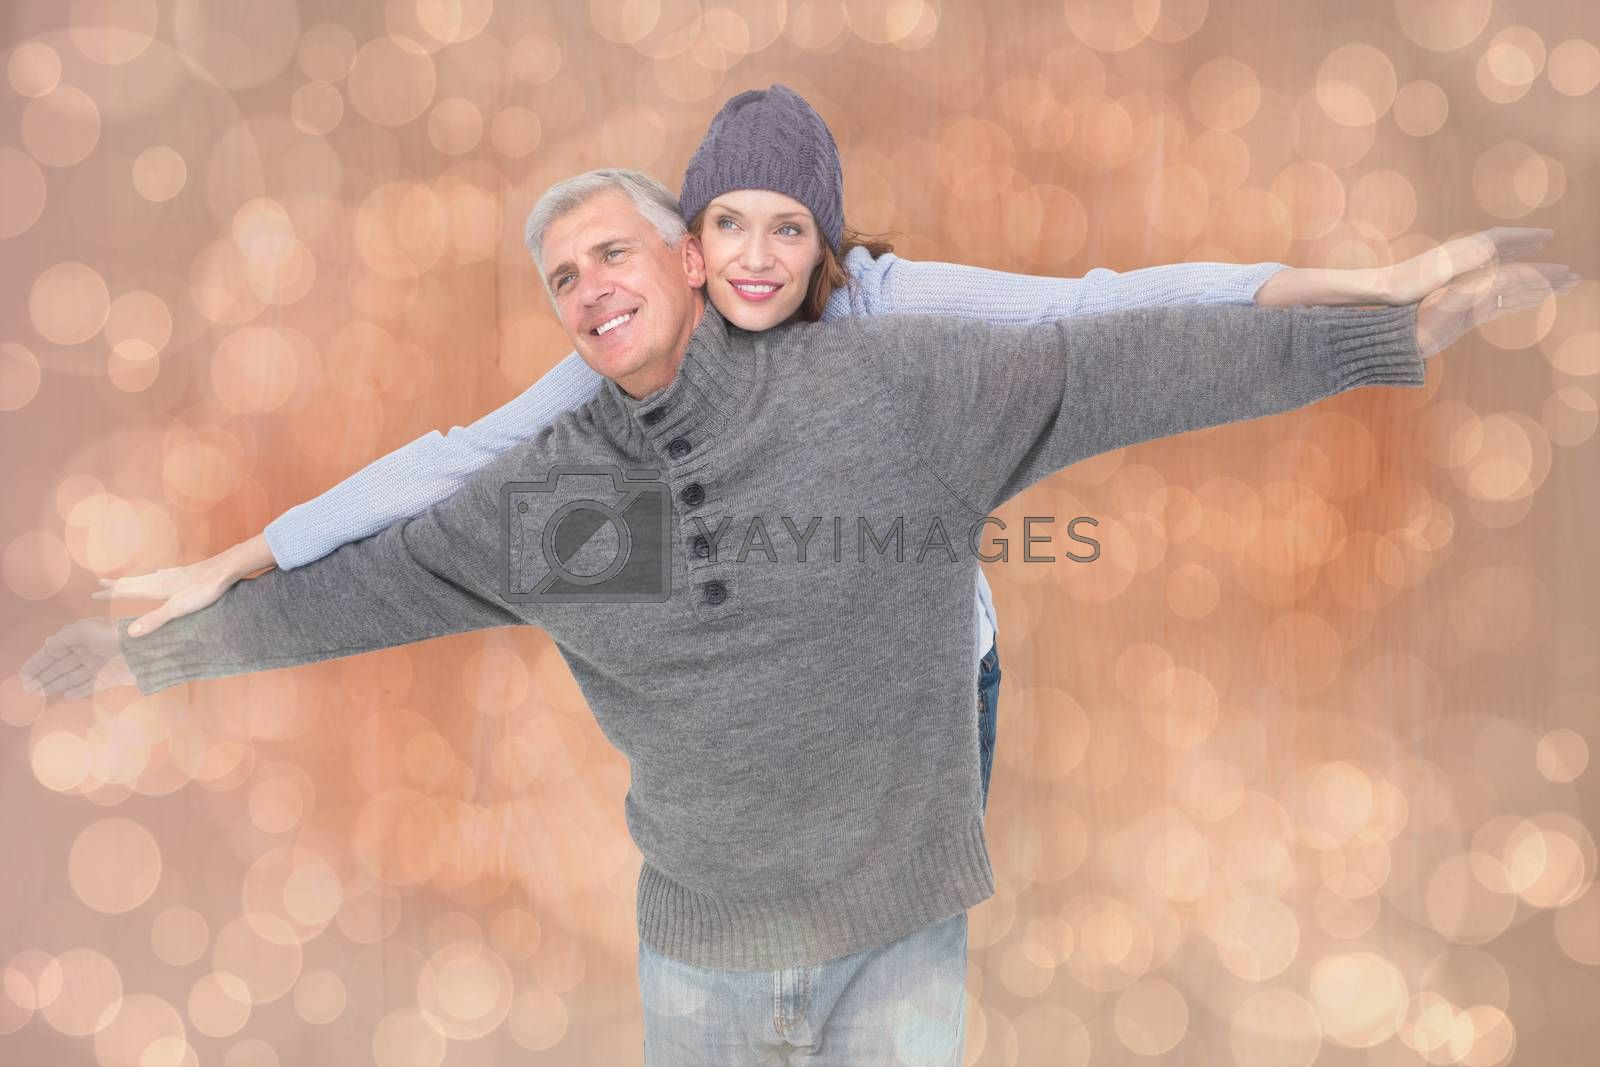 Carefree couple in warm clothing against light glowing dots design pattern